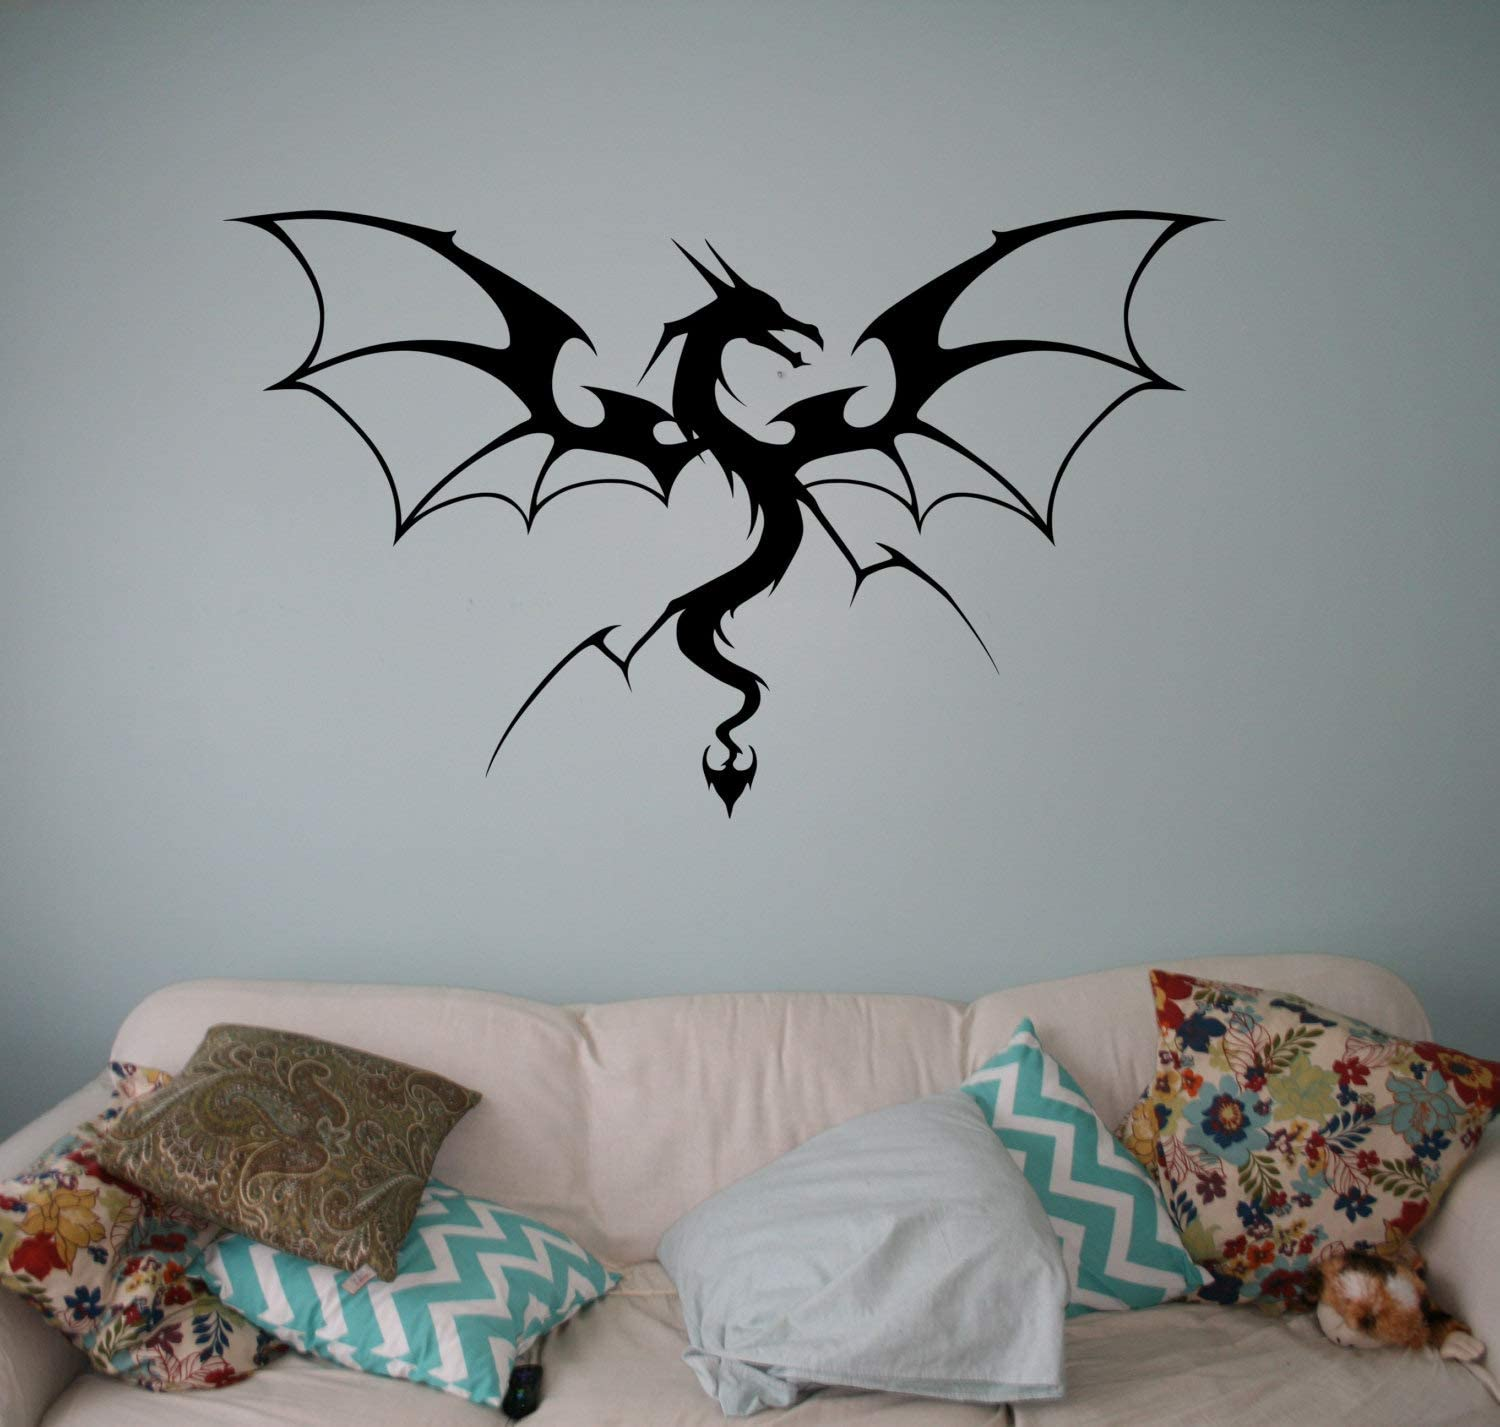 Wall Sticker-Medieval Dragon Vinyl Decal Monster Wall Sticker Gothic Wall Graphics Bedroom Wall Ar-bGDd376